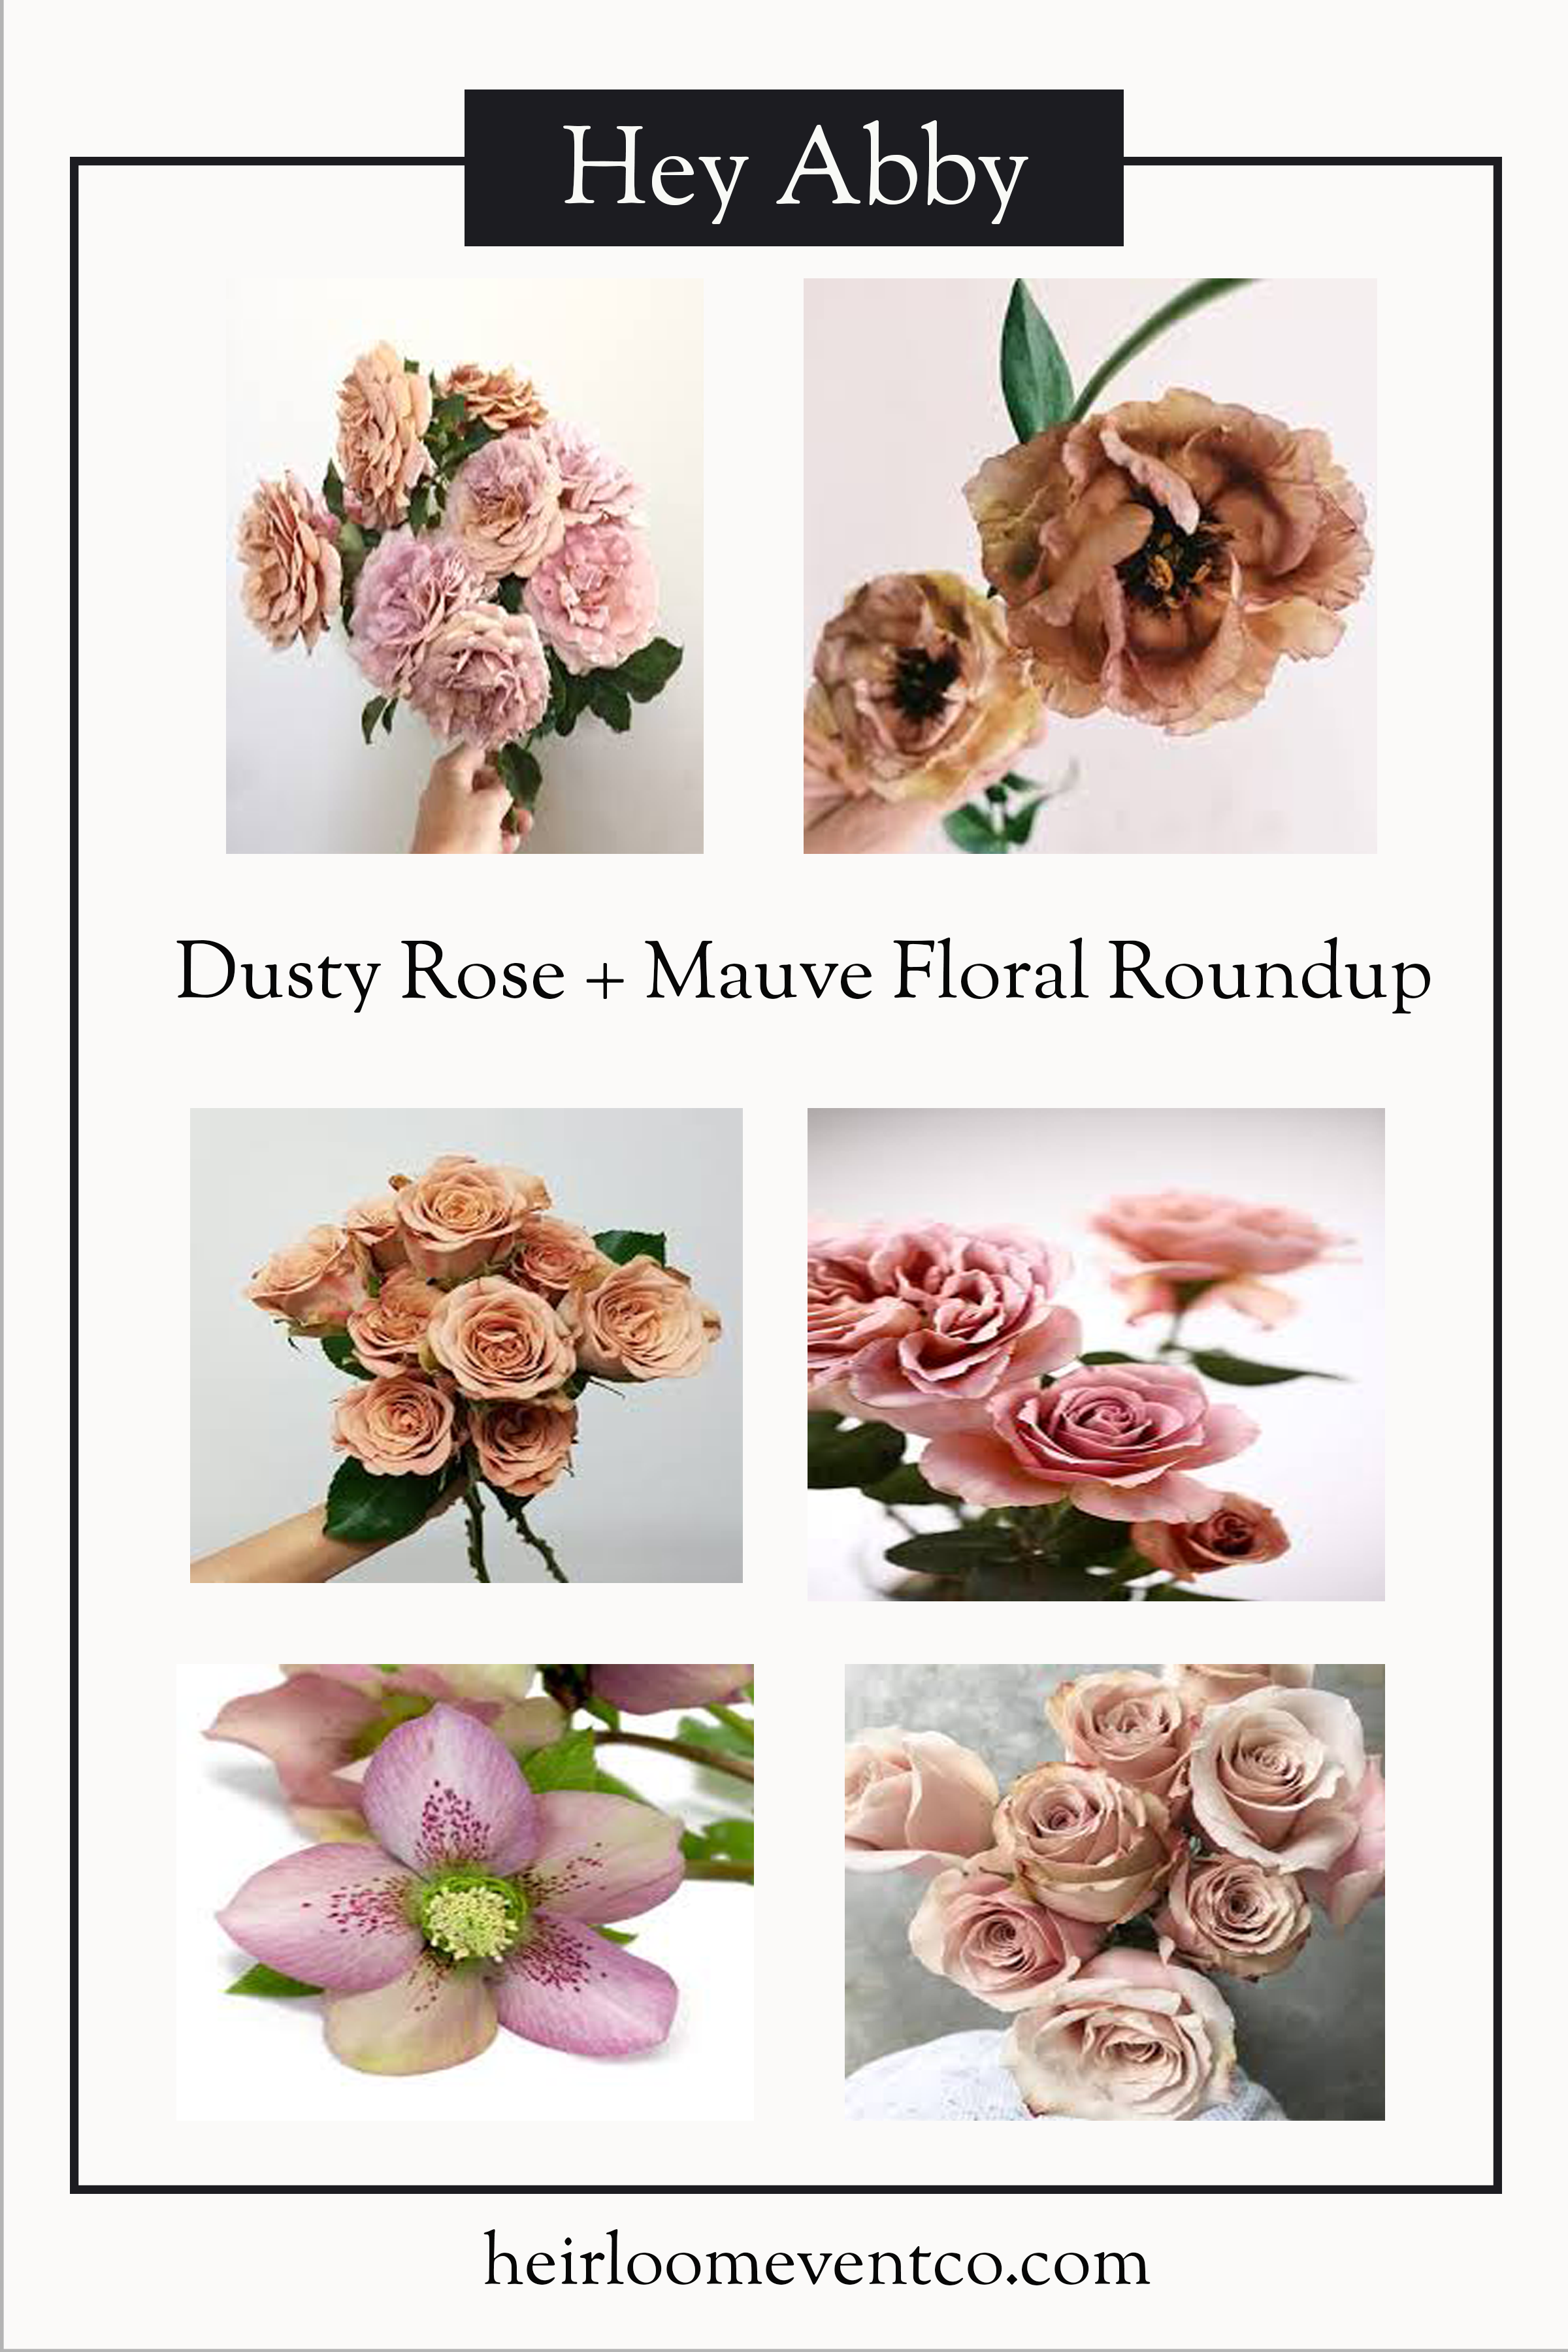 Heirloom Event Co. | Dusty Rose and Mauve Floral Roundup